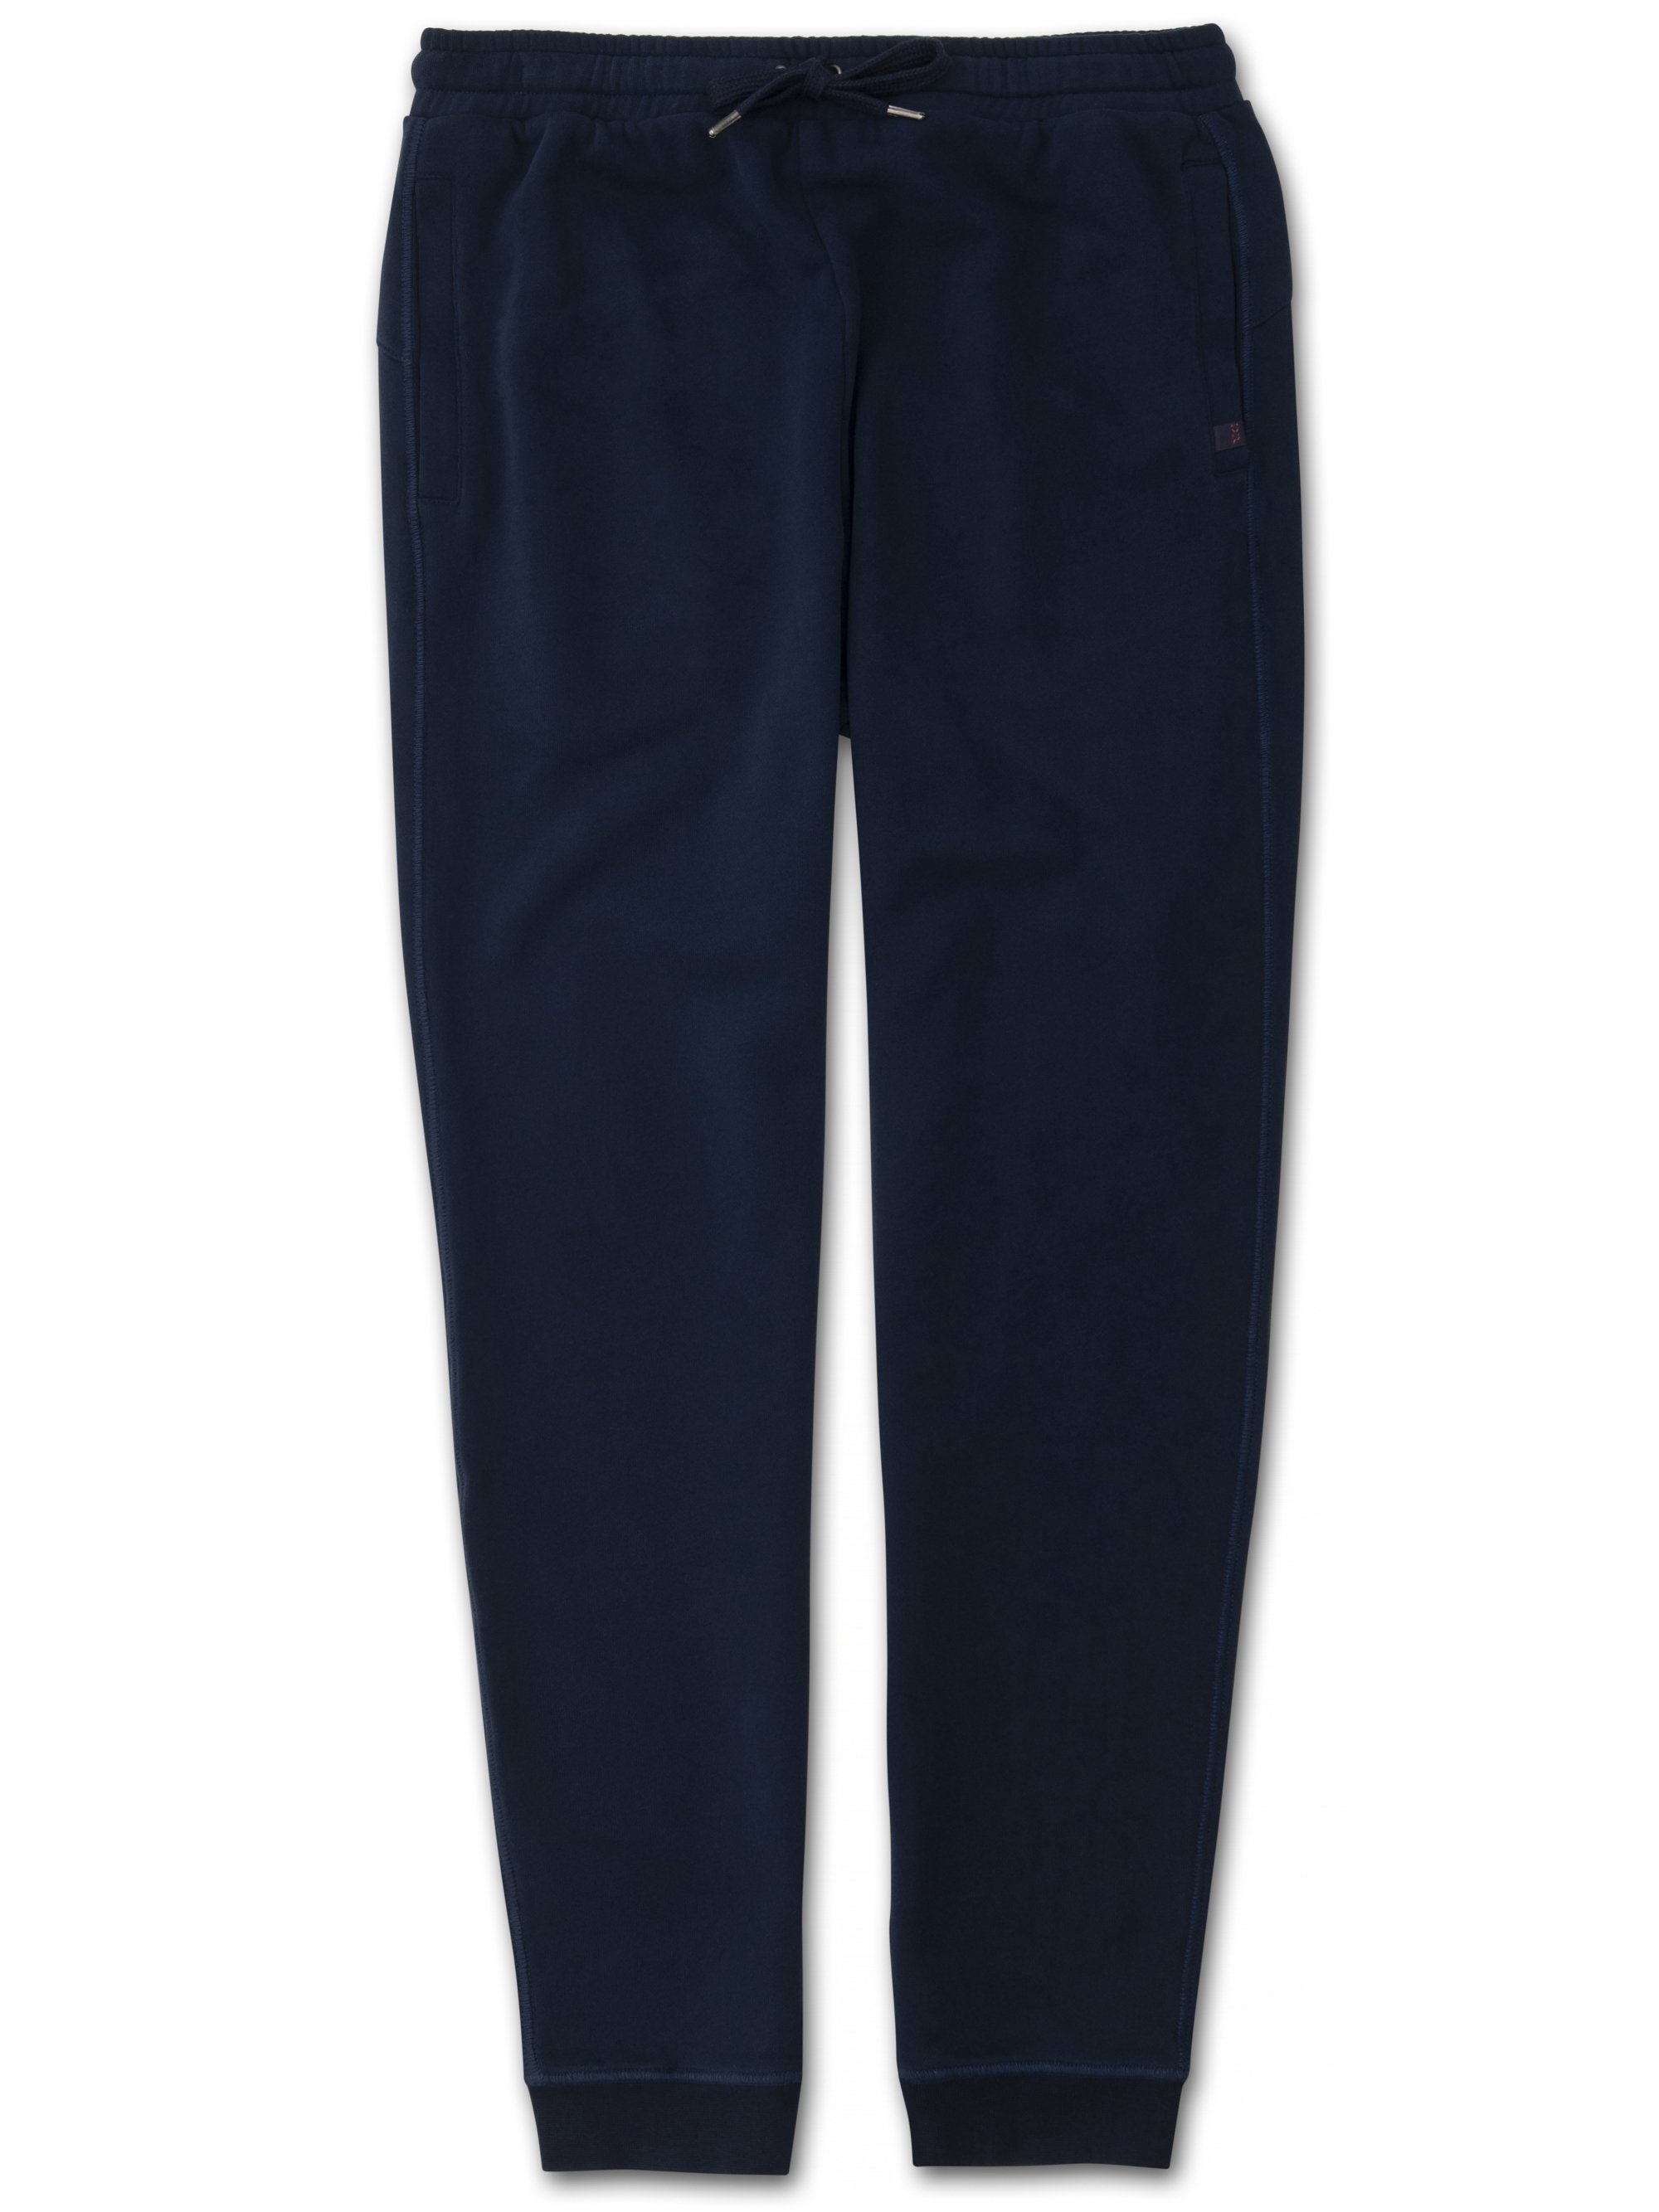 Men's Sweatpants Devon 2 Loopback Cotton Navy